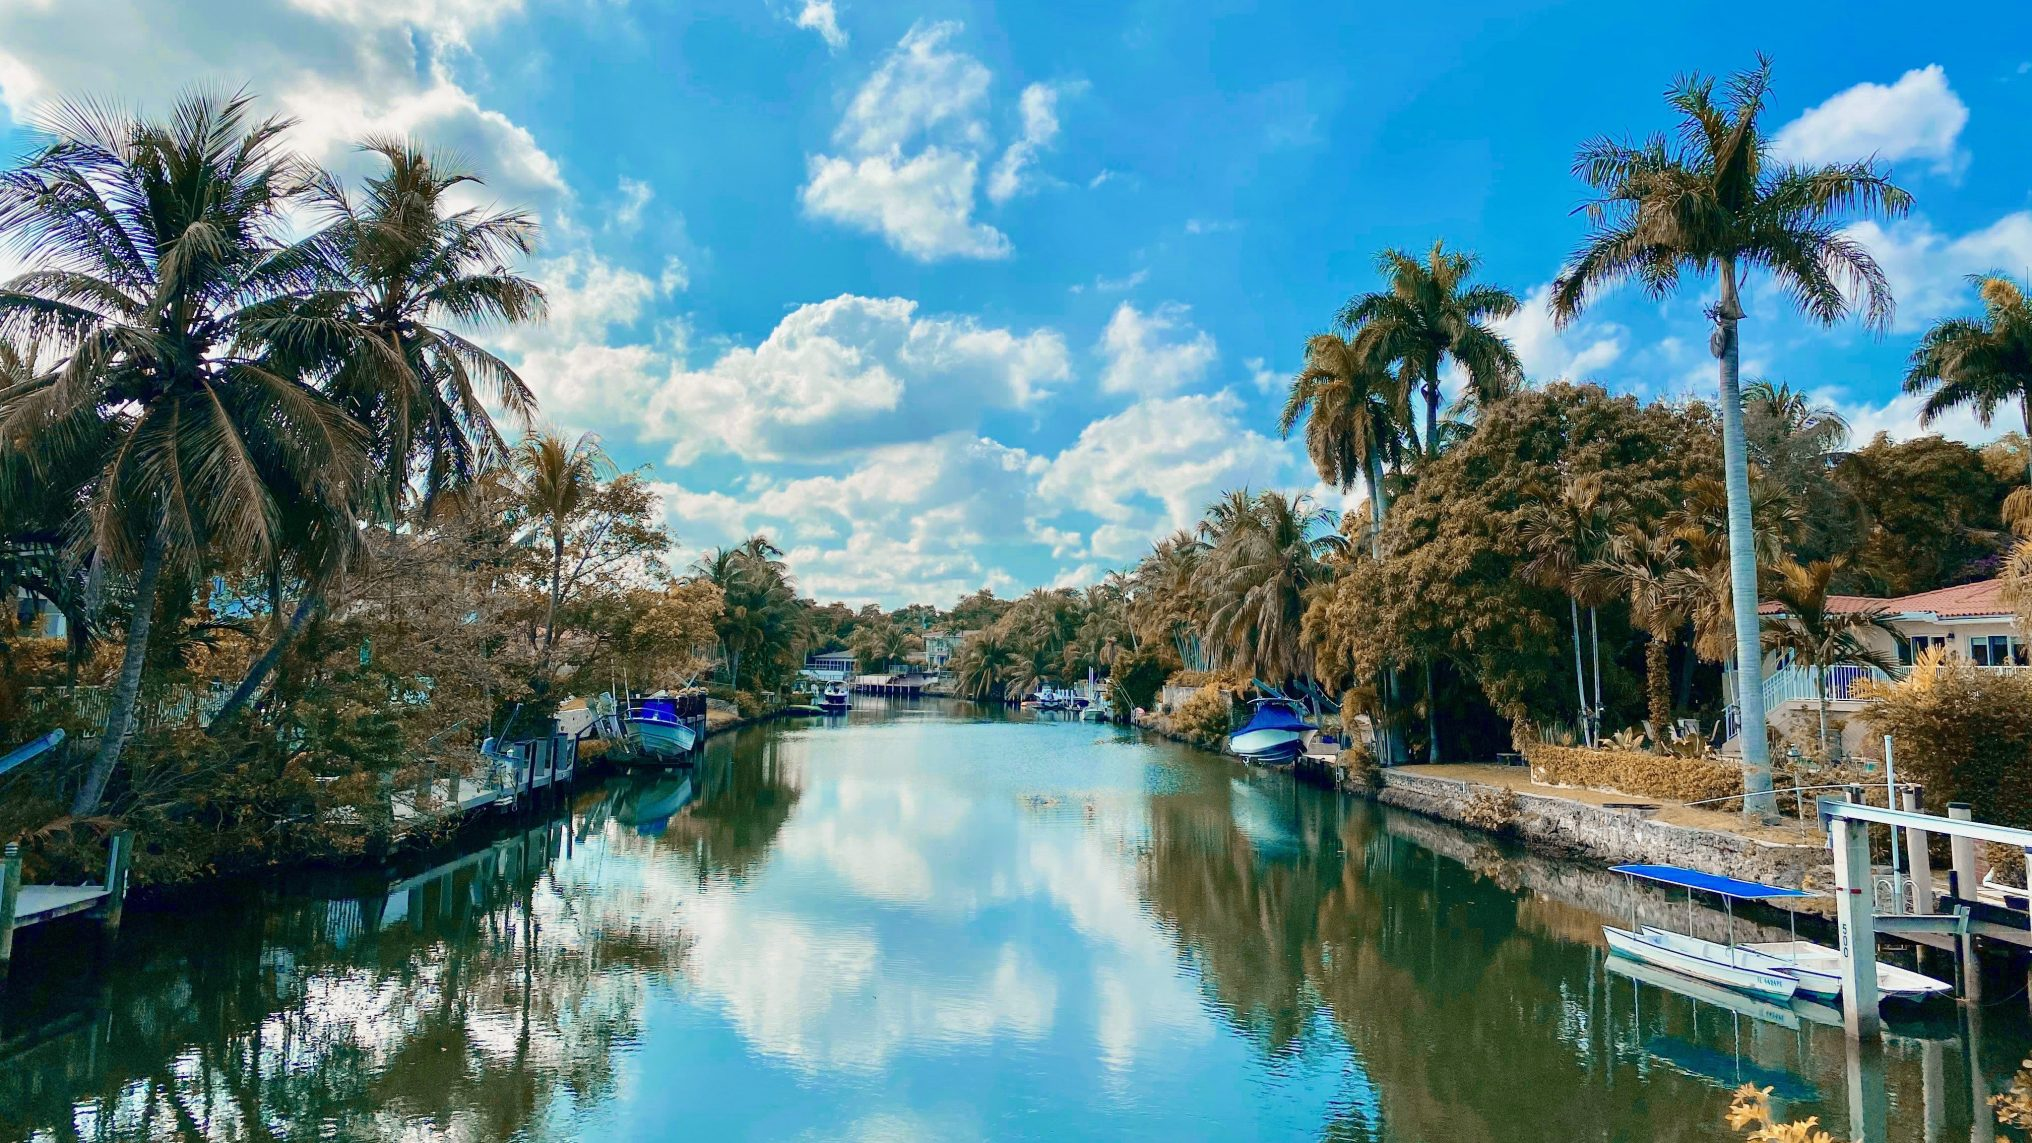 A photo of coral gables waterway